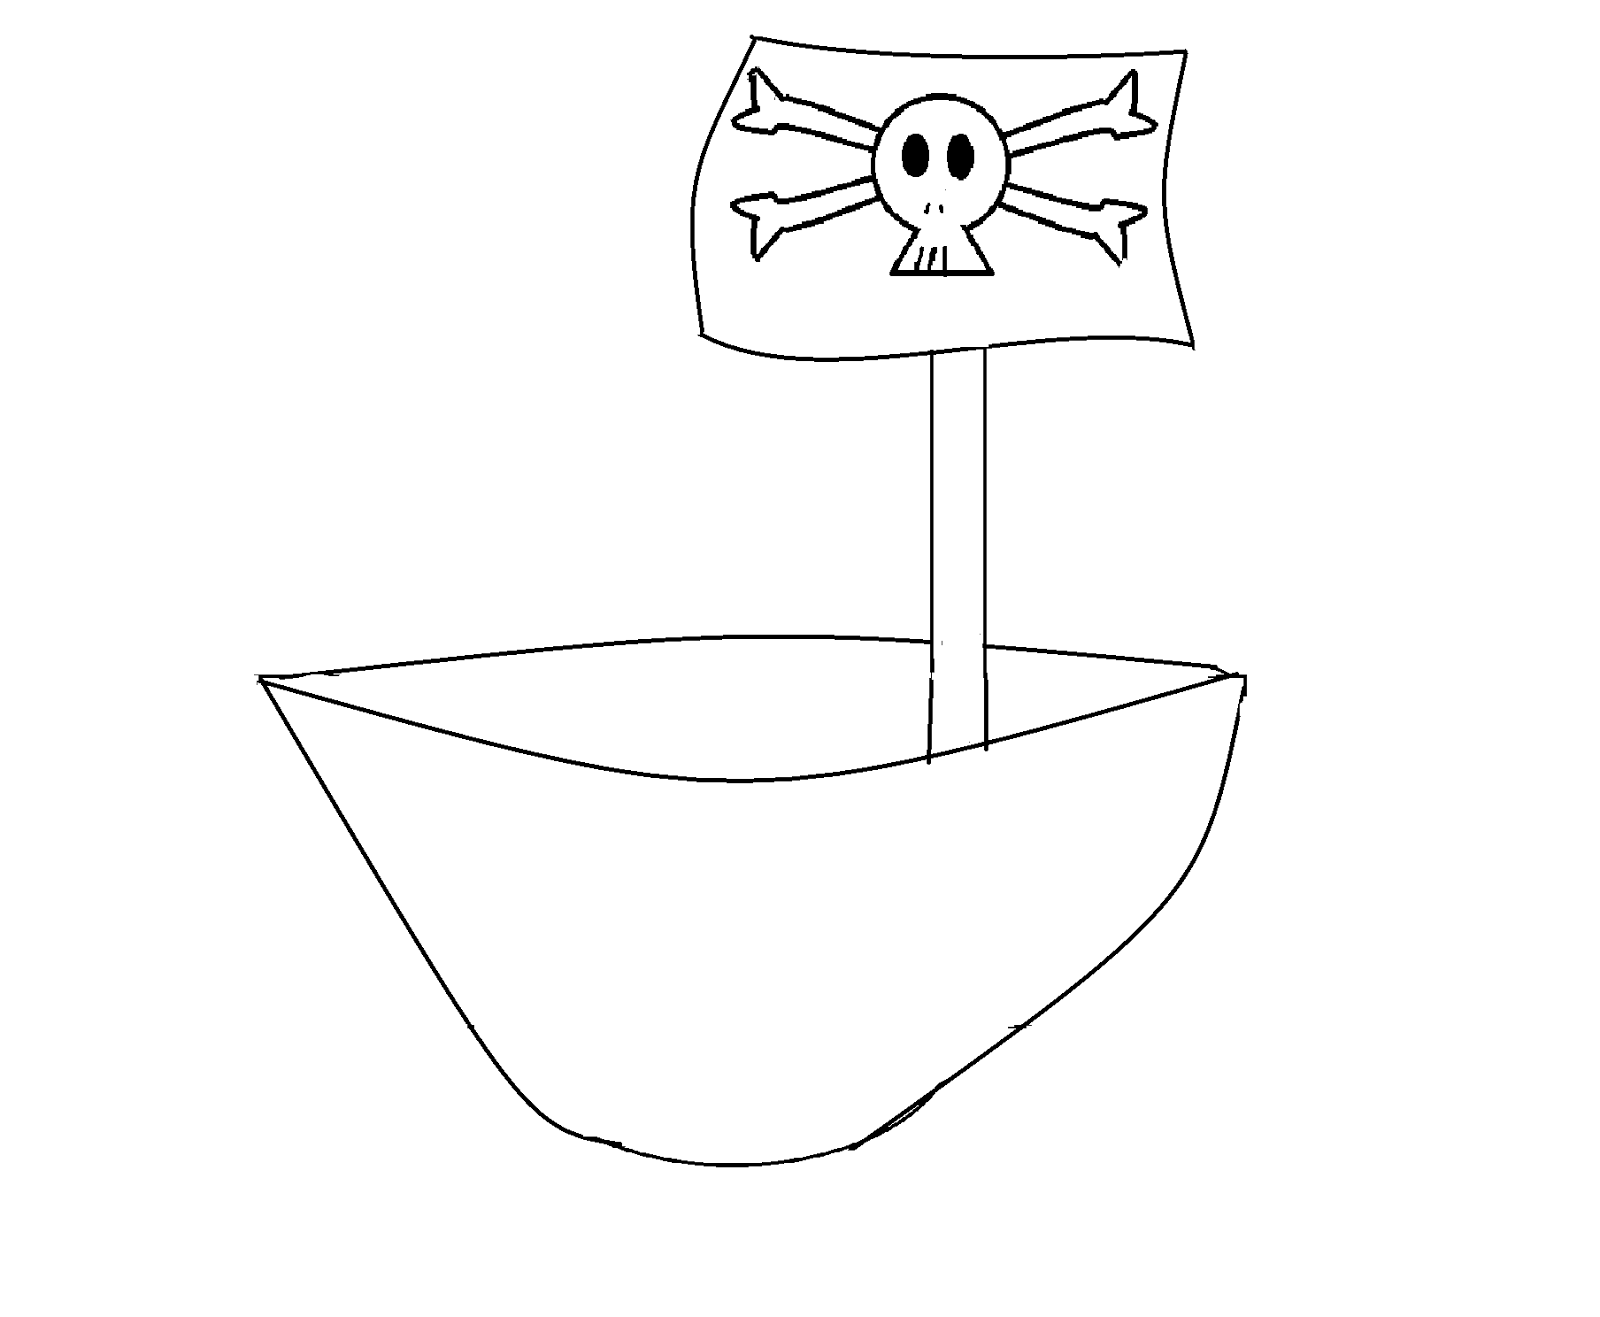 cartoonitt how to draw a toy pirate ship